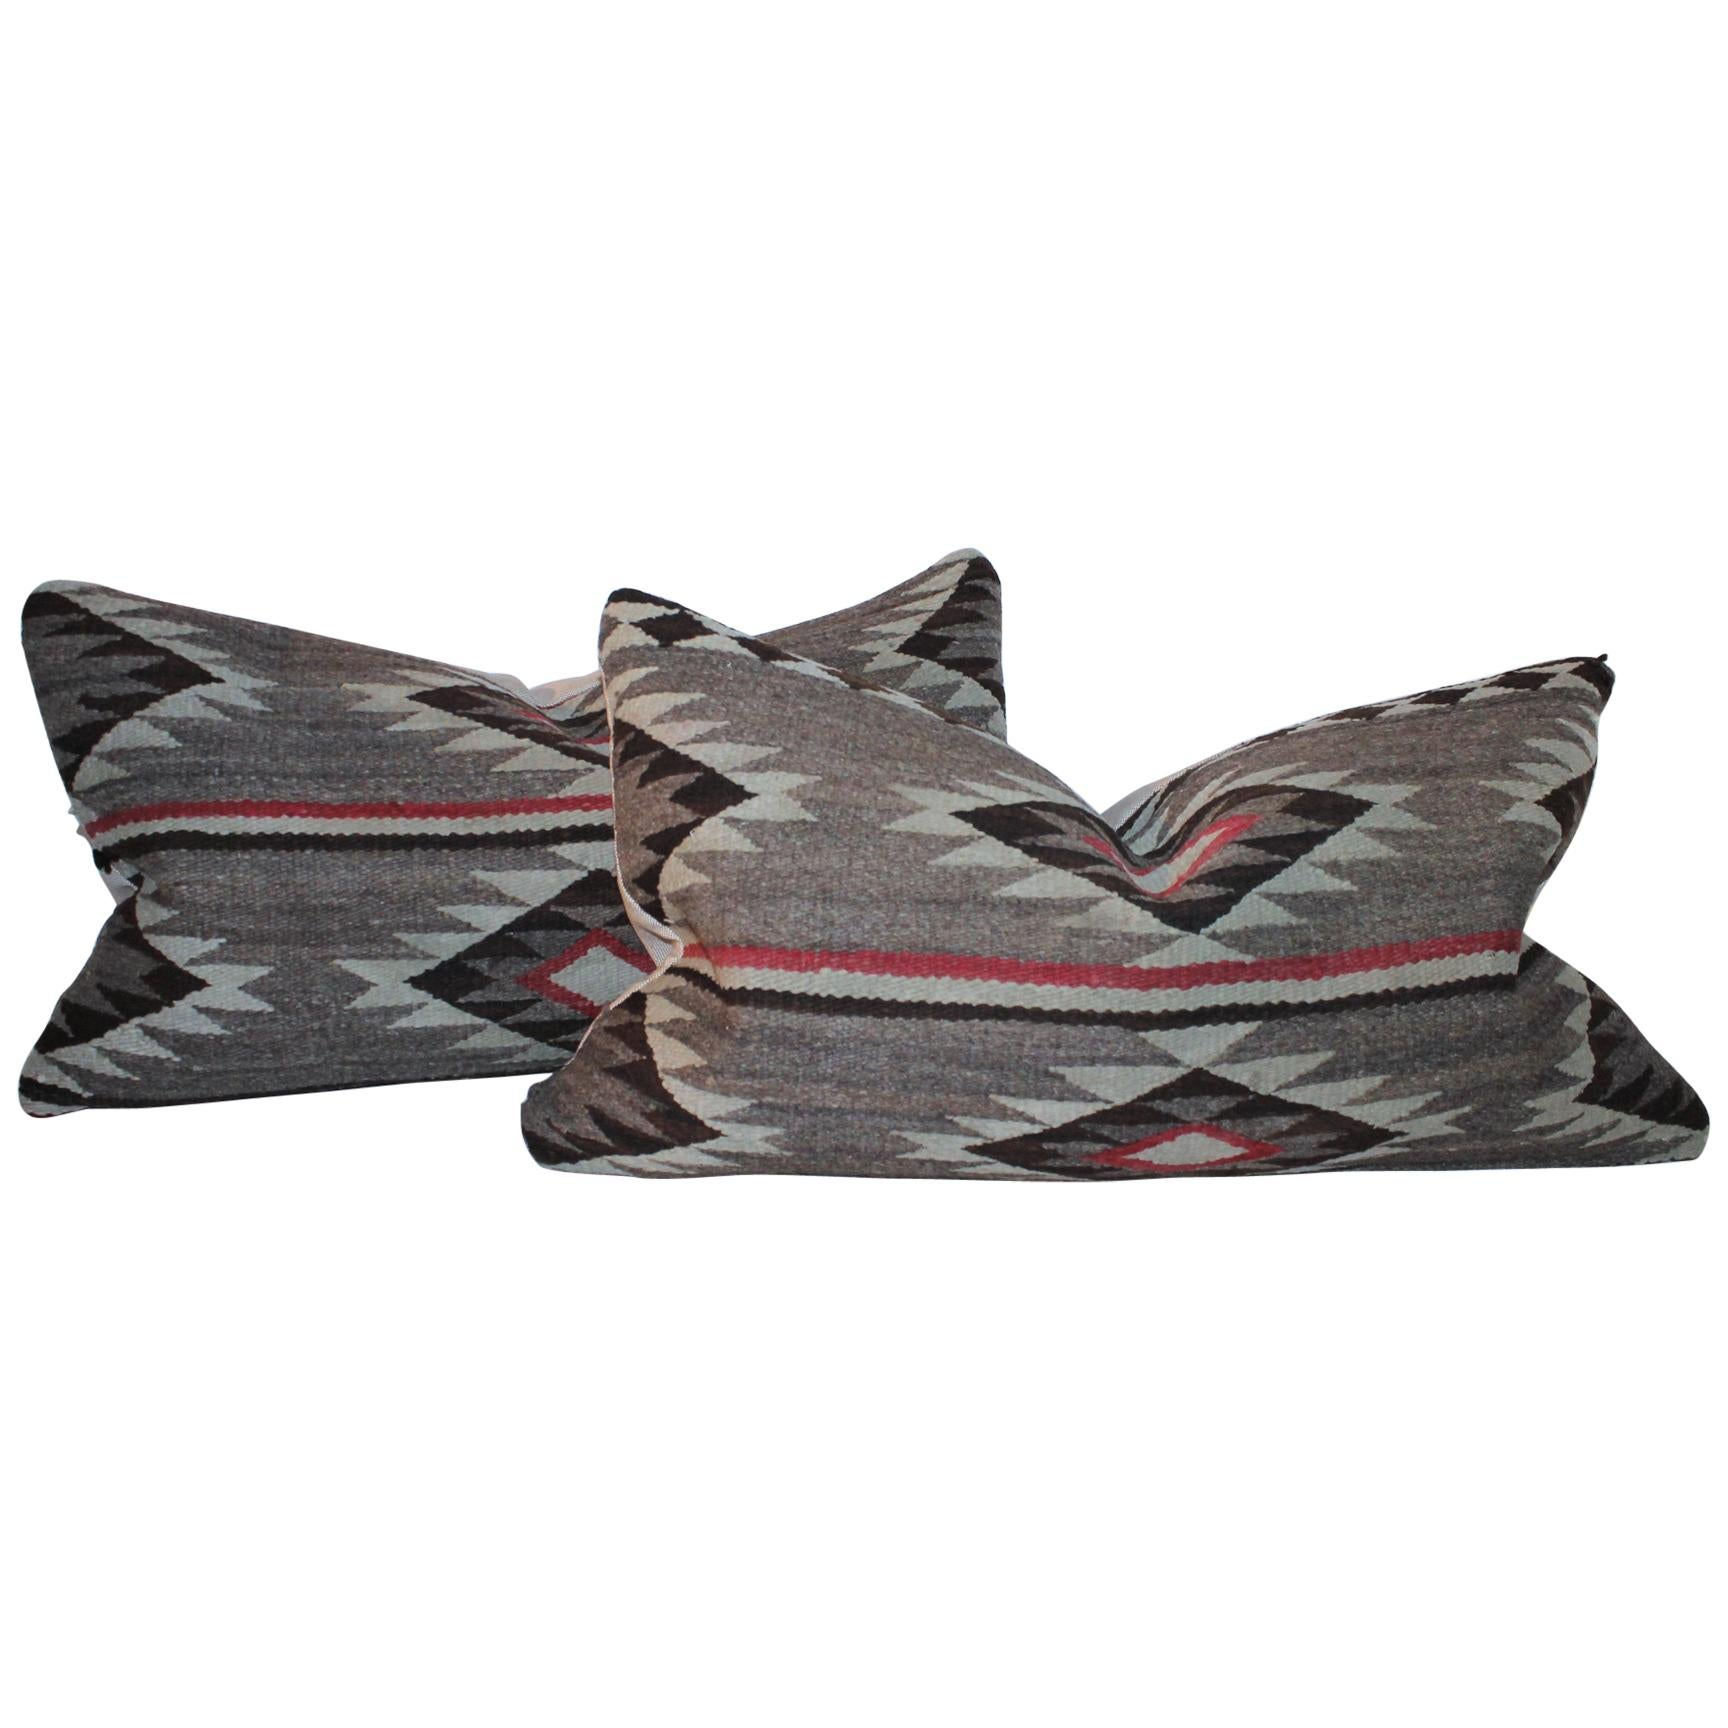 Navajo Indian Weaving Bolster Pillow